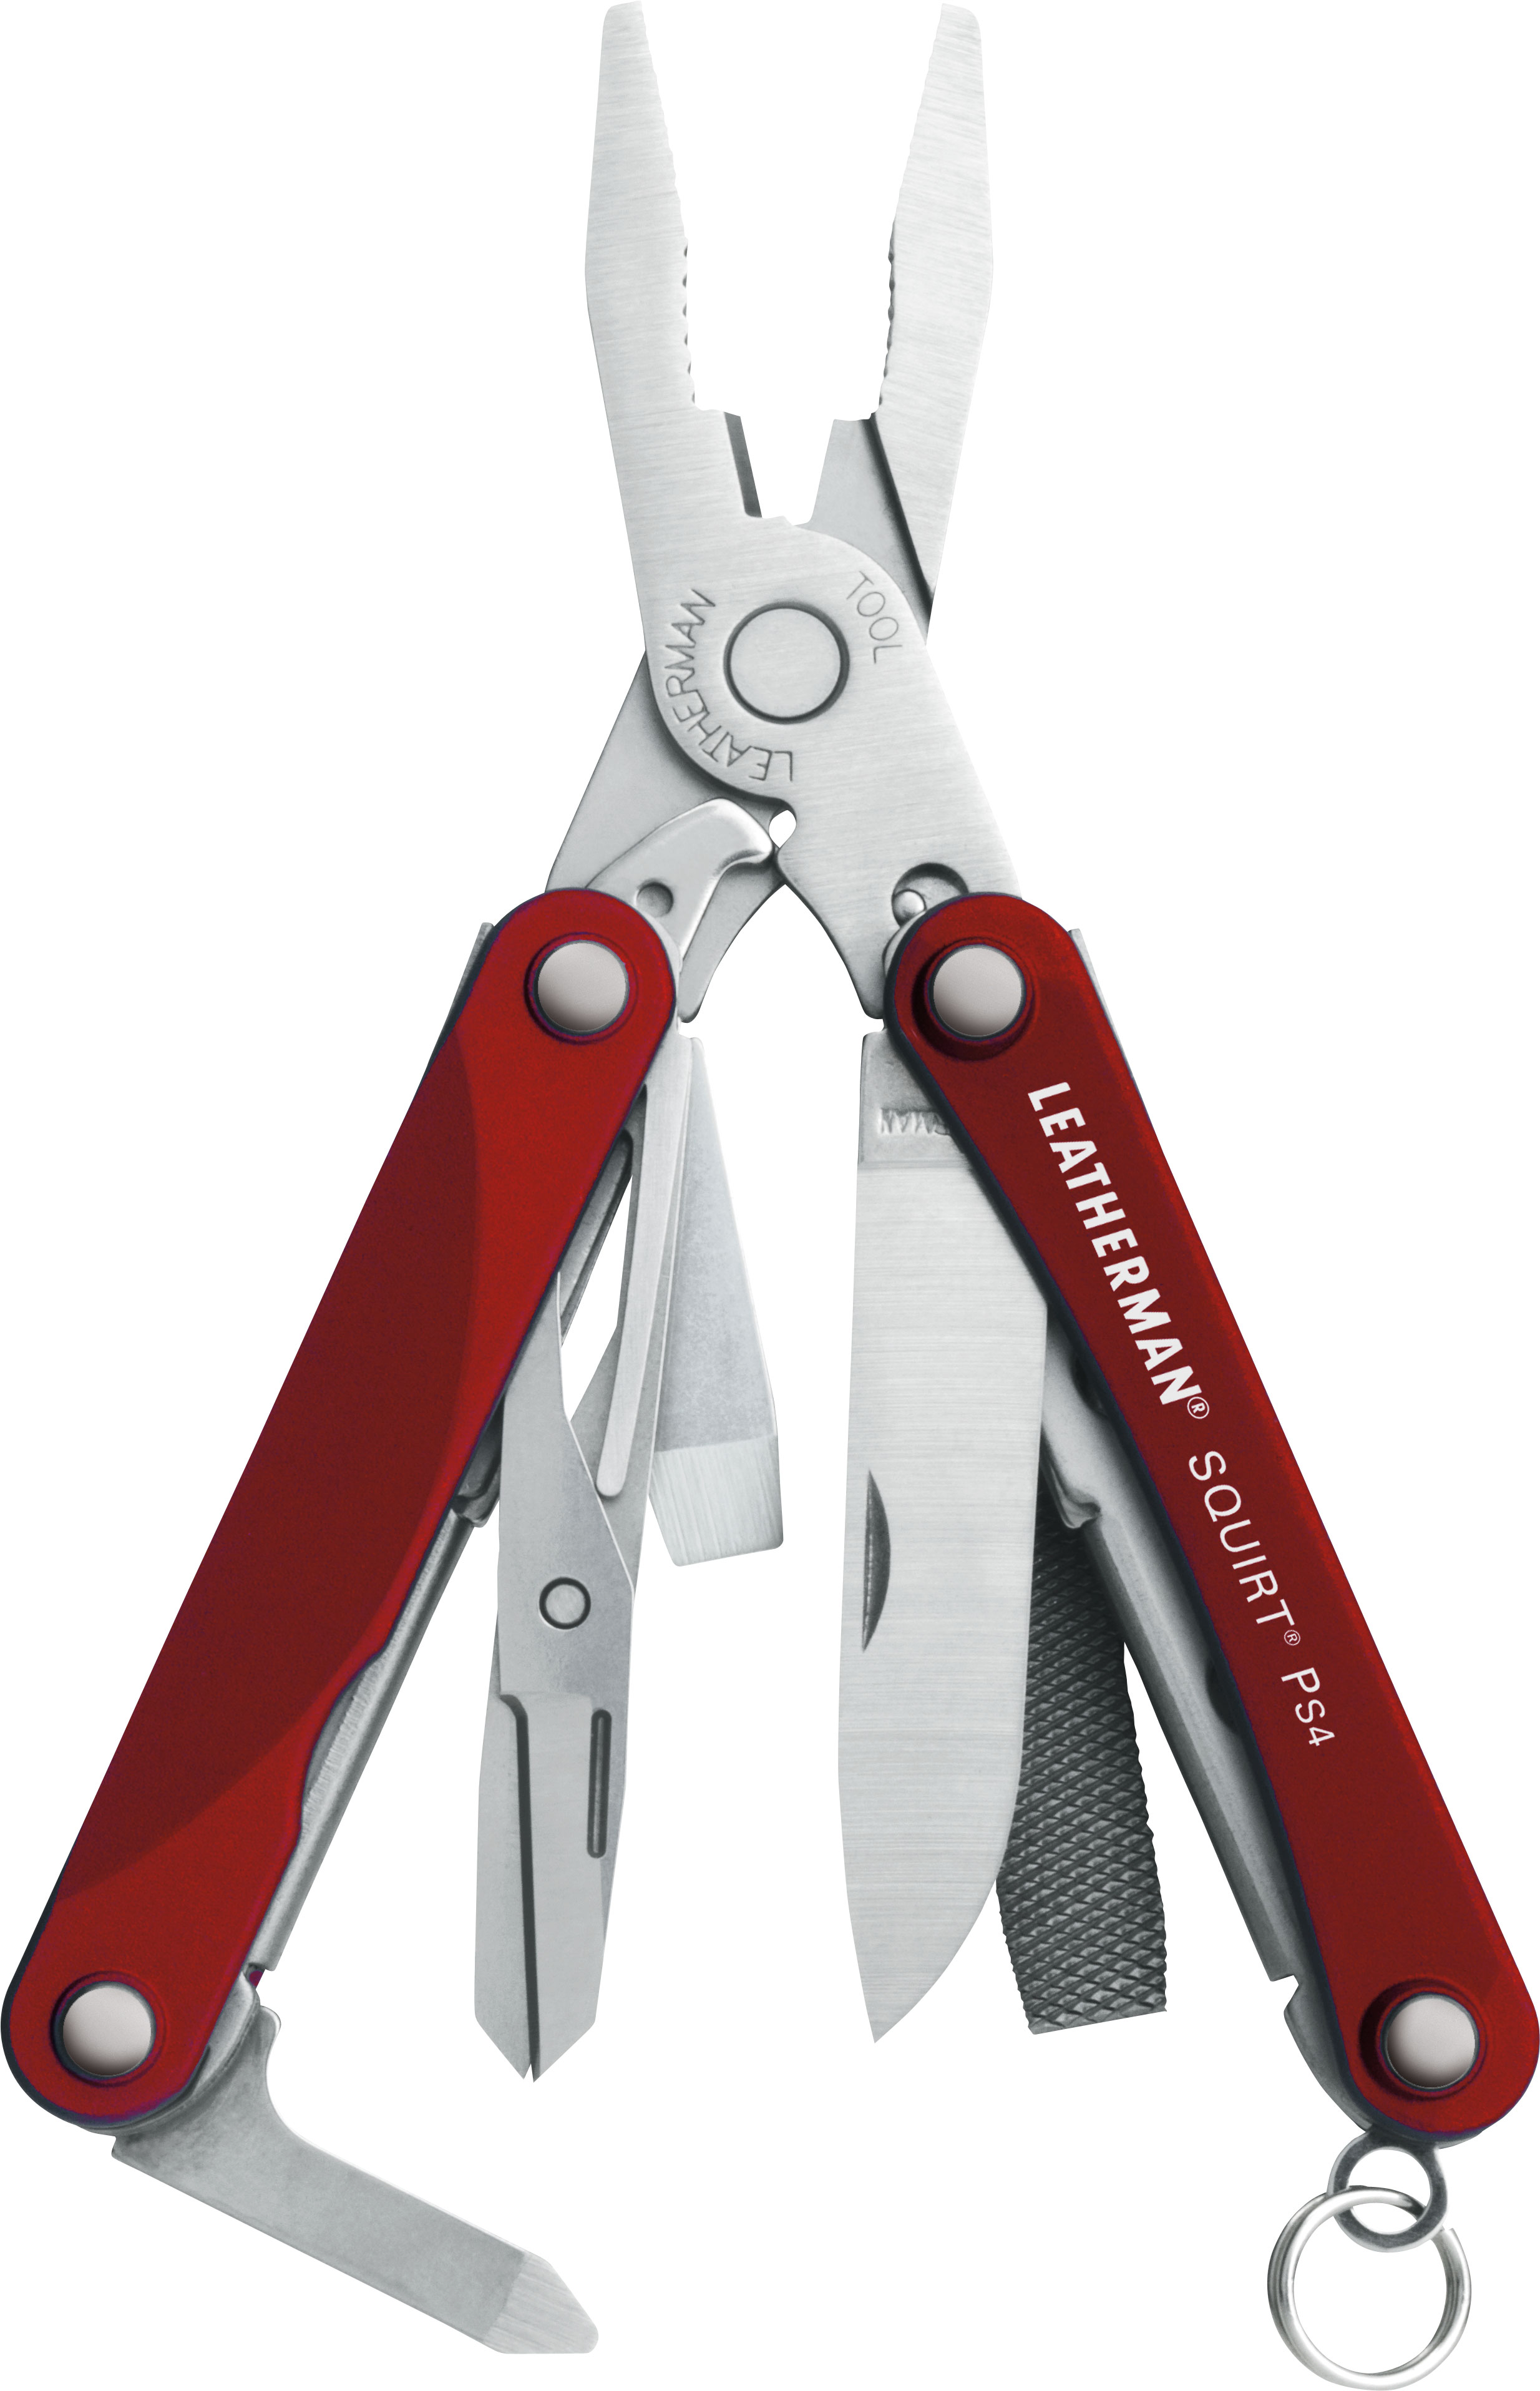 Leatherman Squirt Ps4 Keychain Mini Multi Tool Red